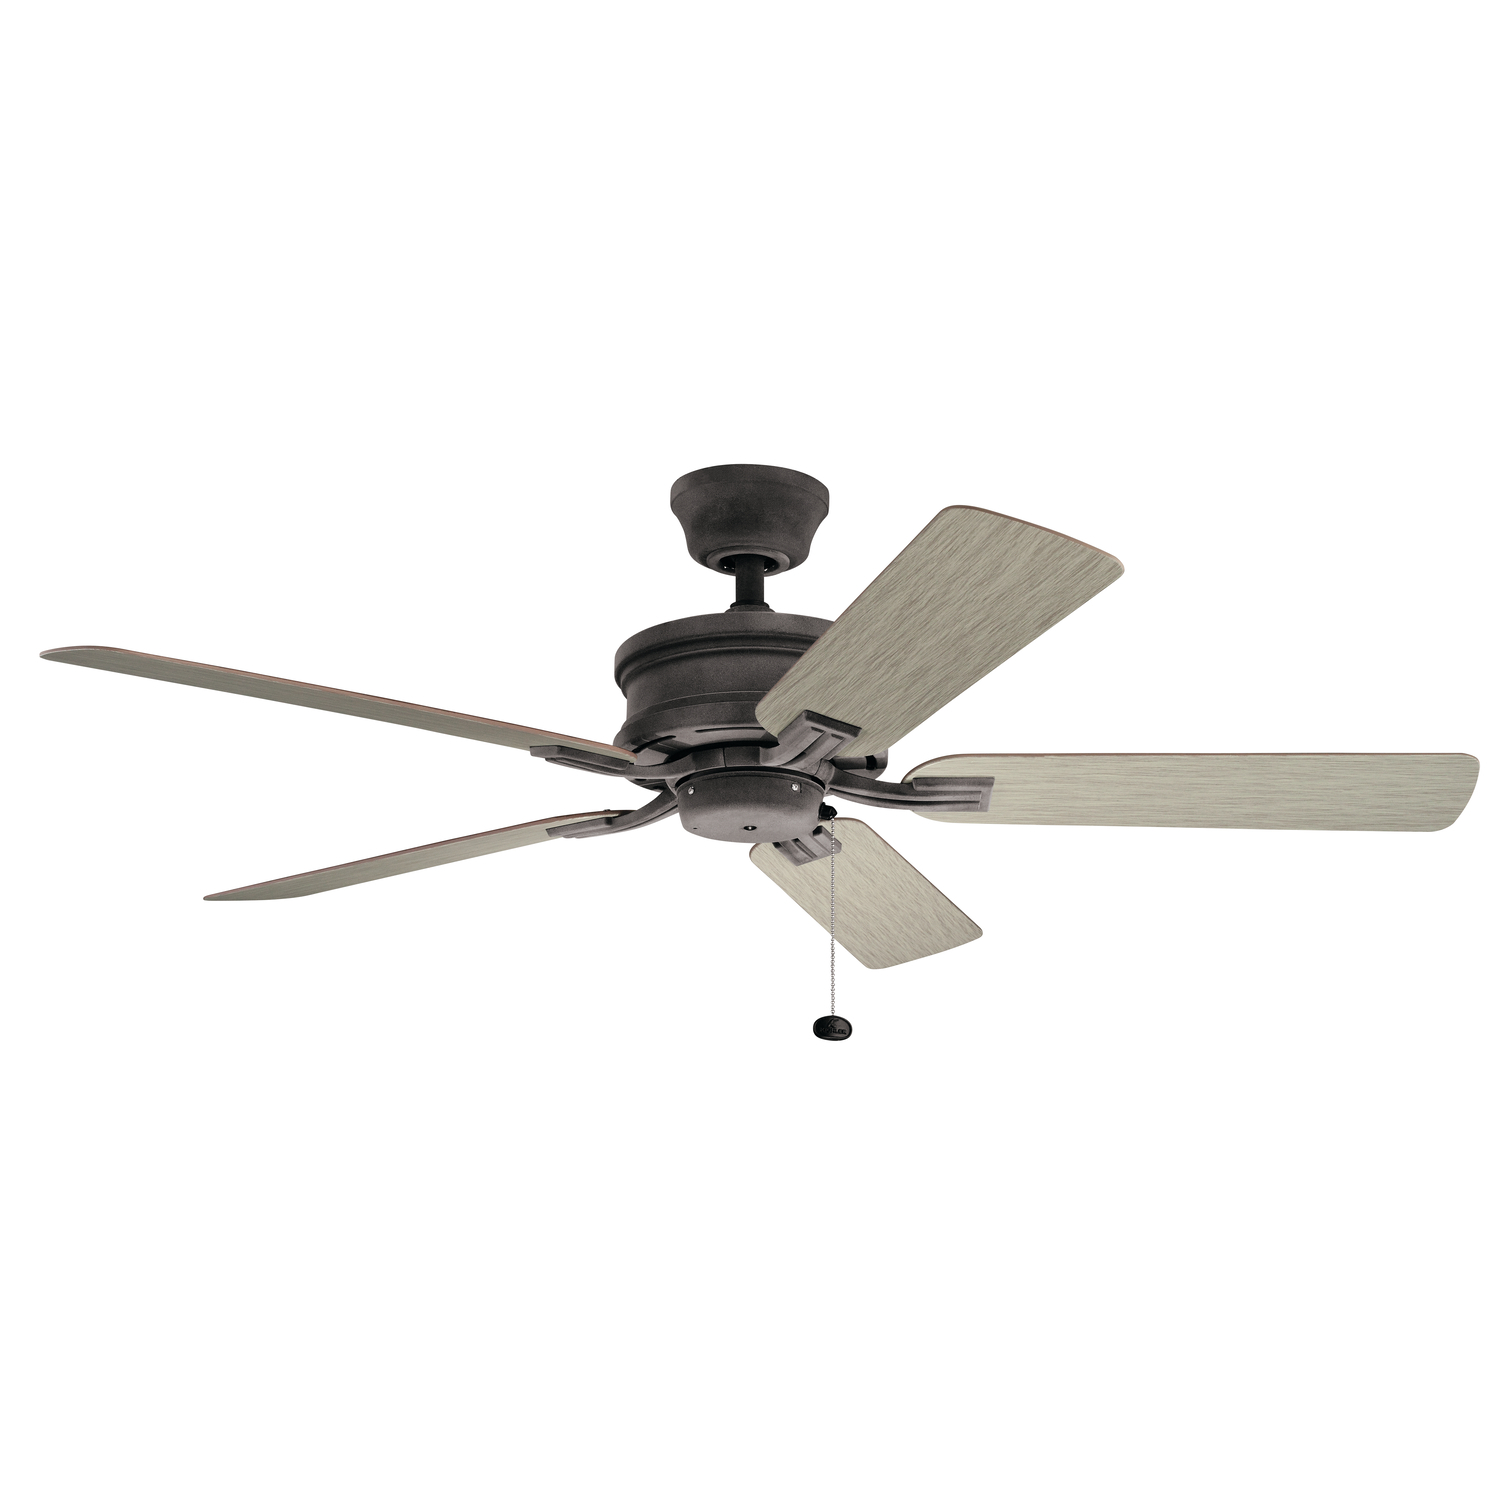 52 inchCeiling Fan from the Tess collection by Kichler 310220WZC